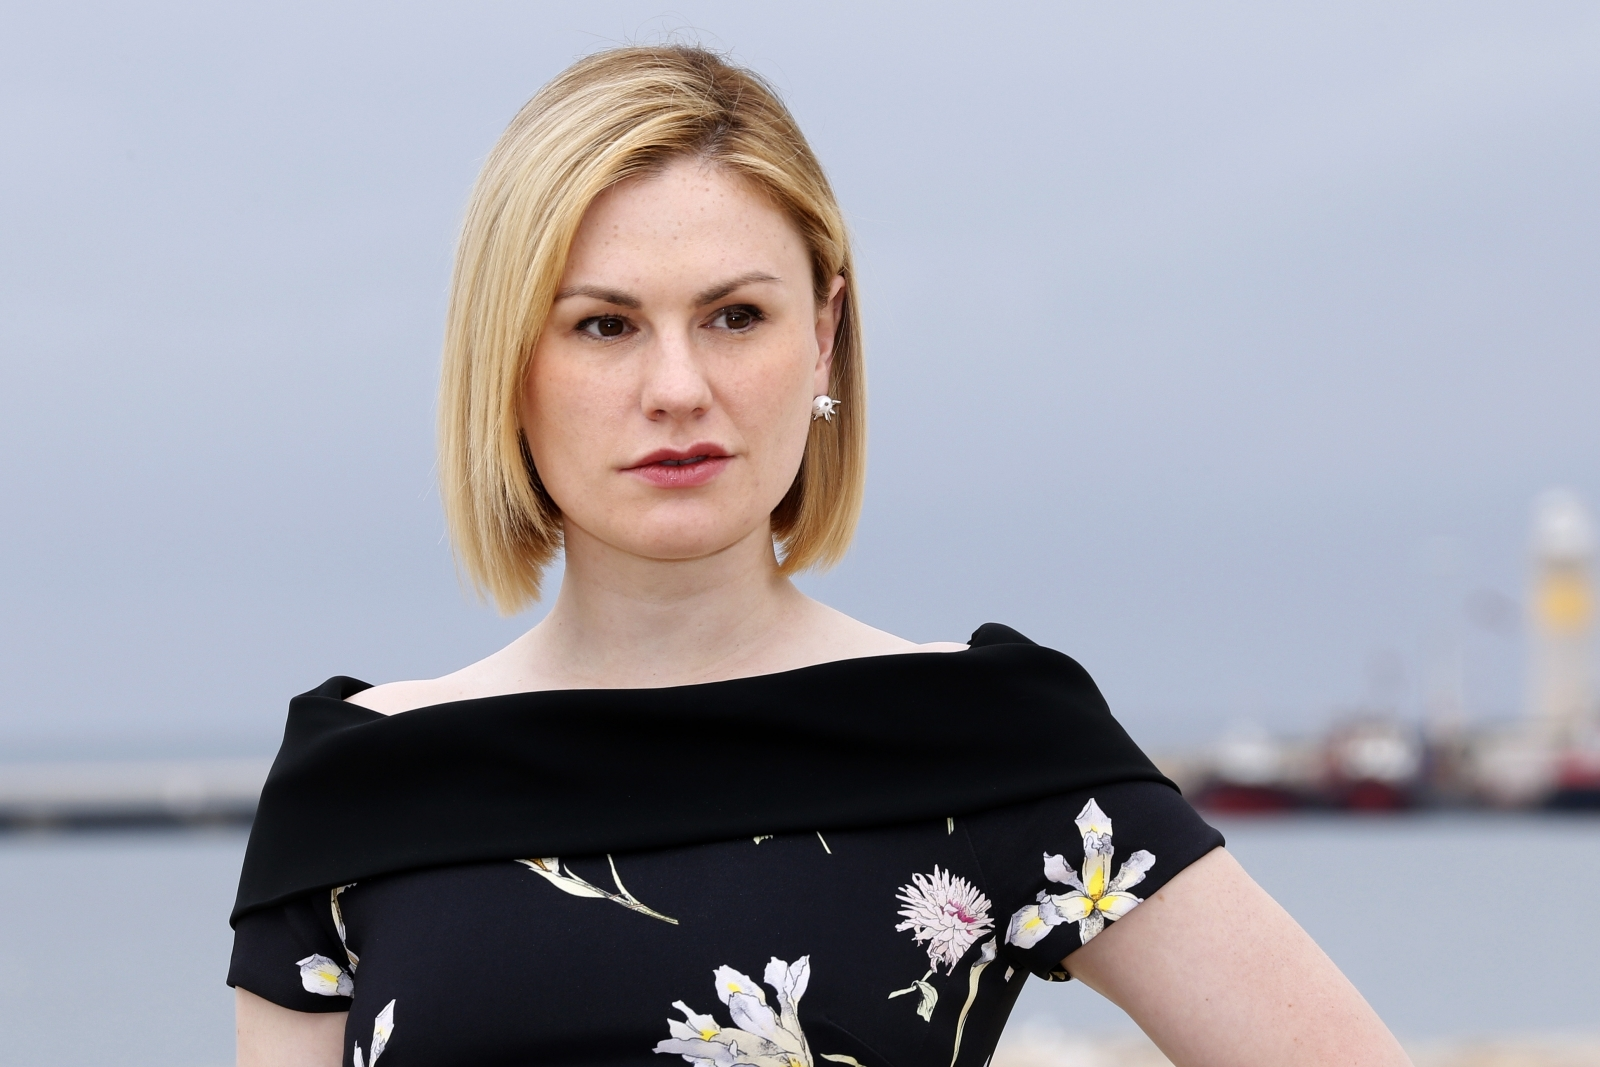 Actress Anna Paquin has revealing moment on live news